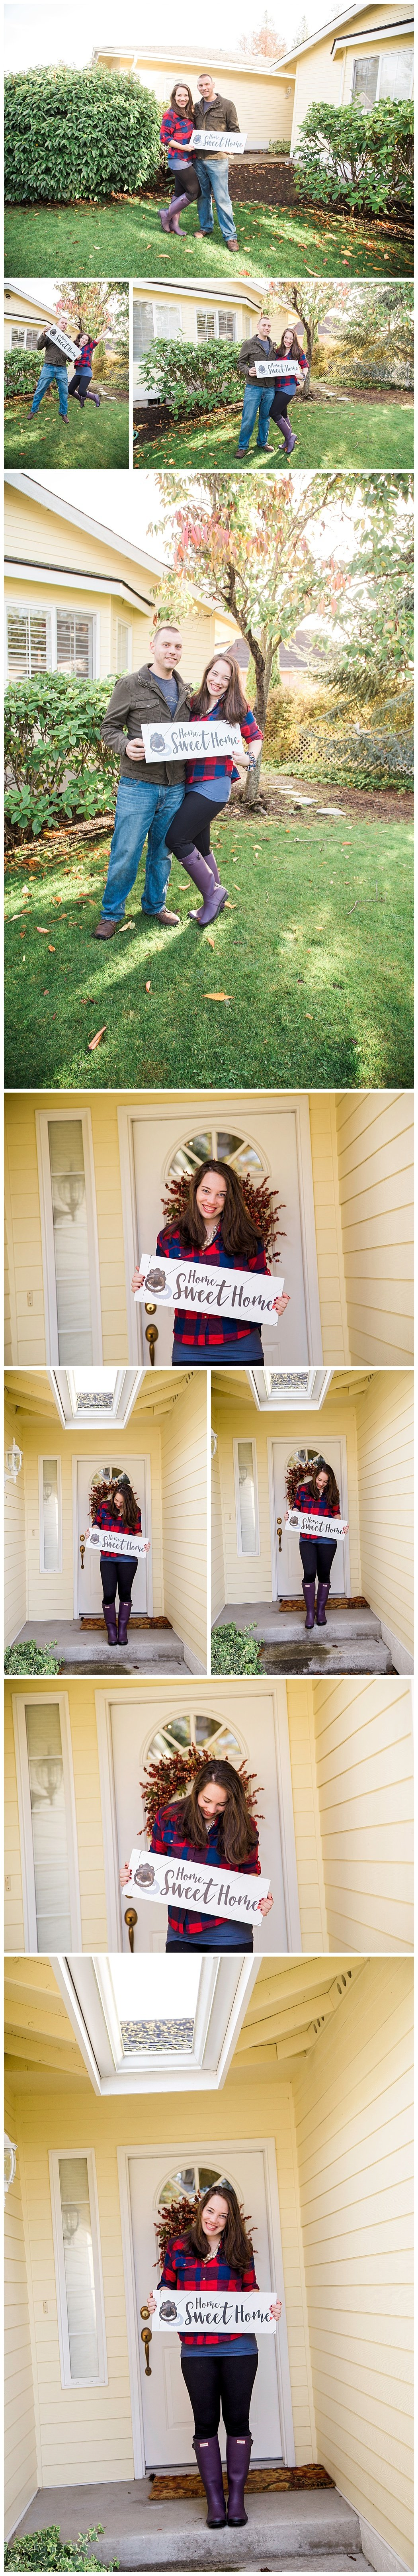 home sweet home sign new house